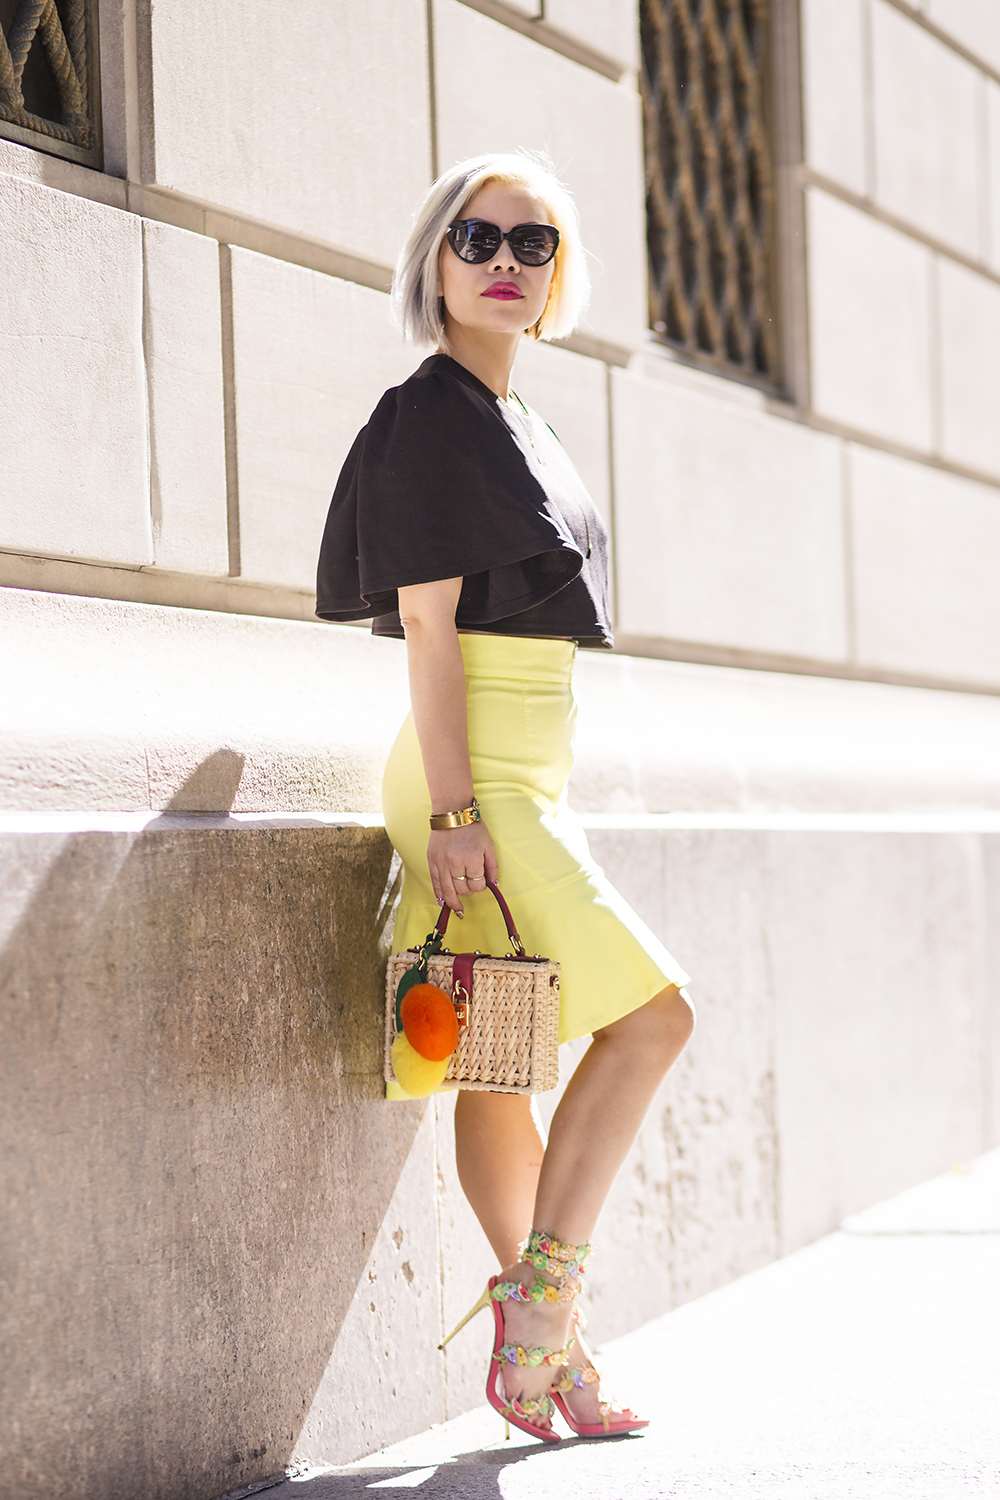 New York Fashion Week- Crystal Phuong- Streetstyle outfit